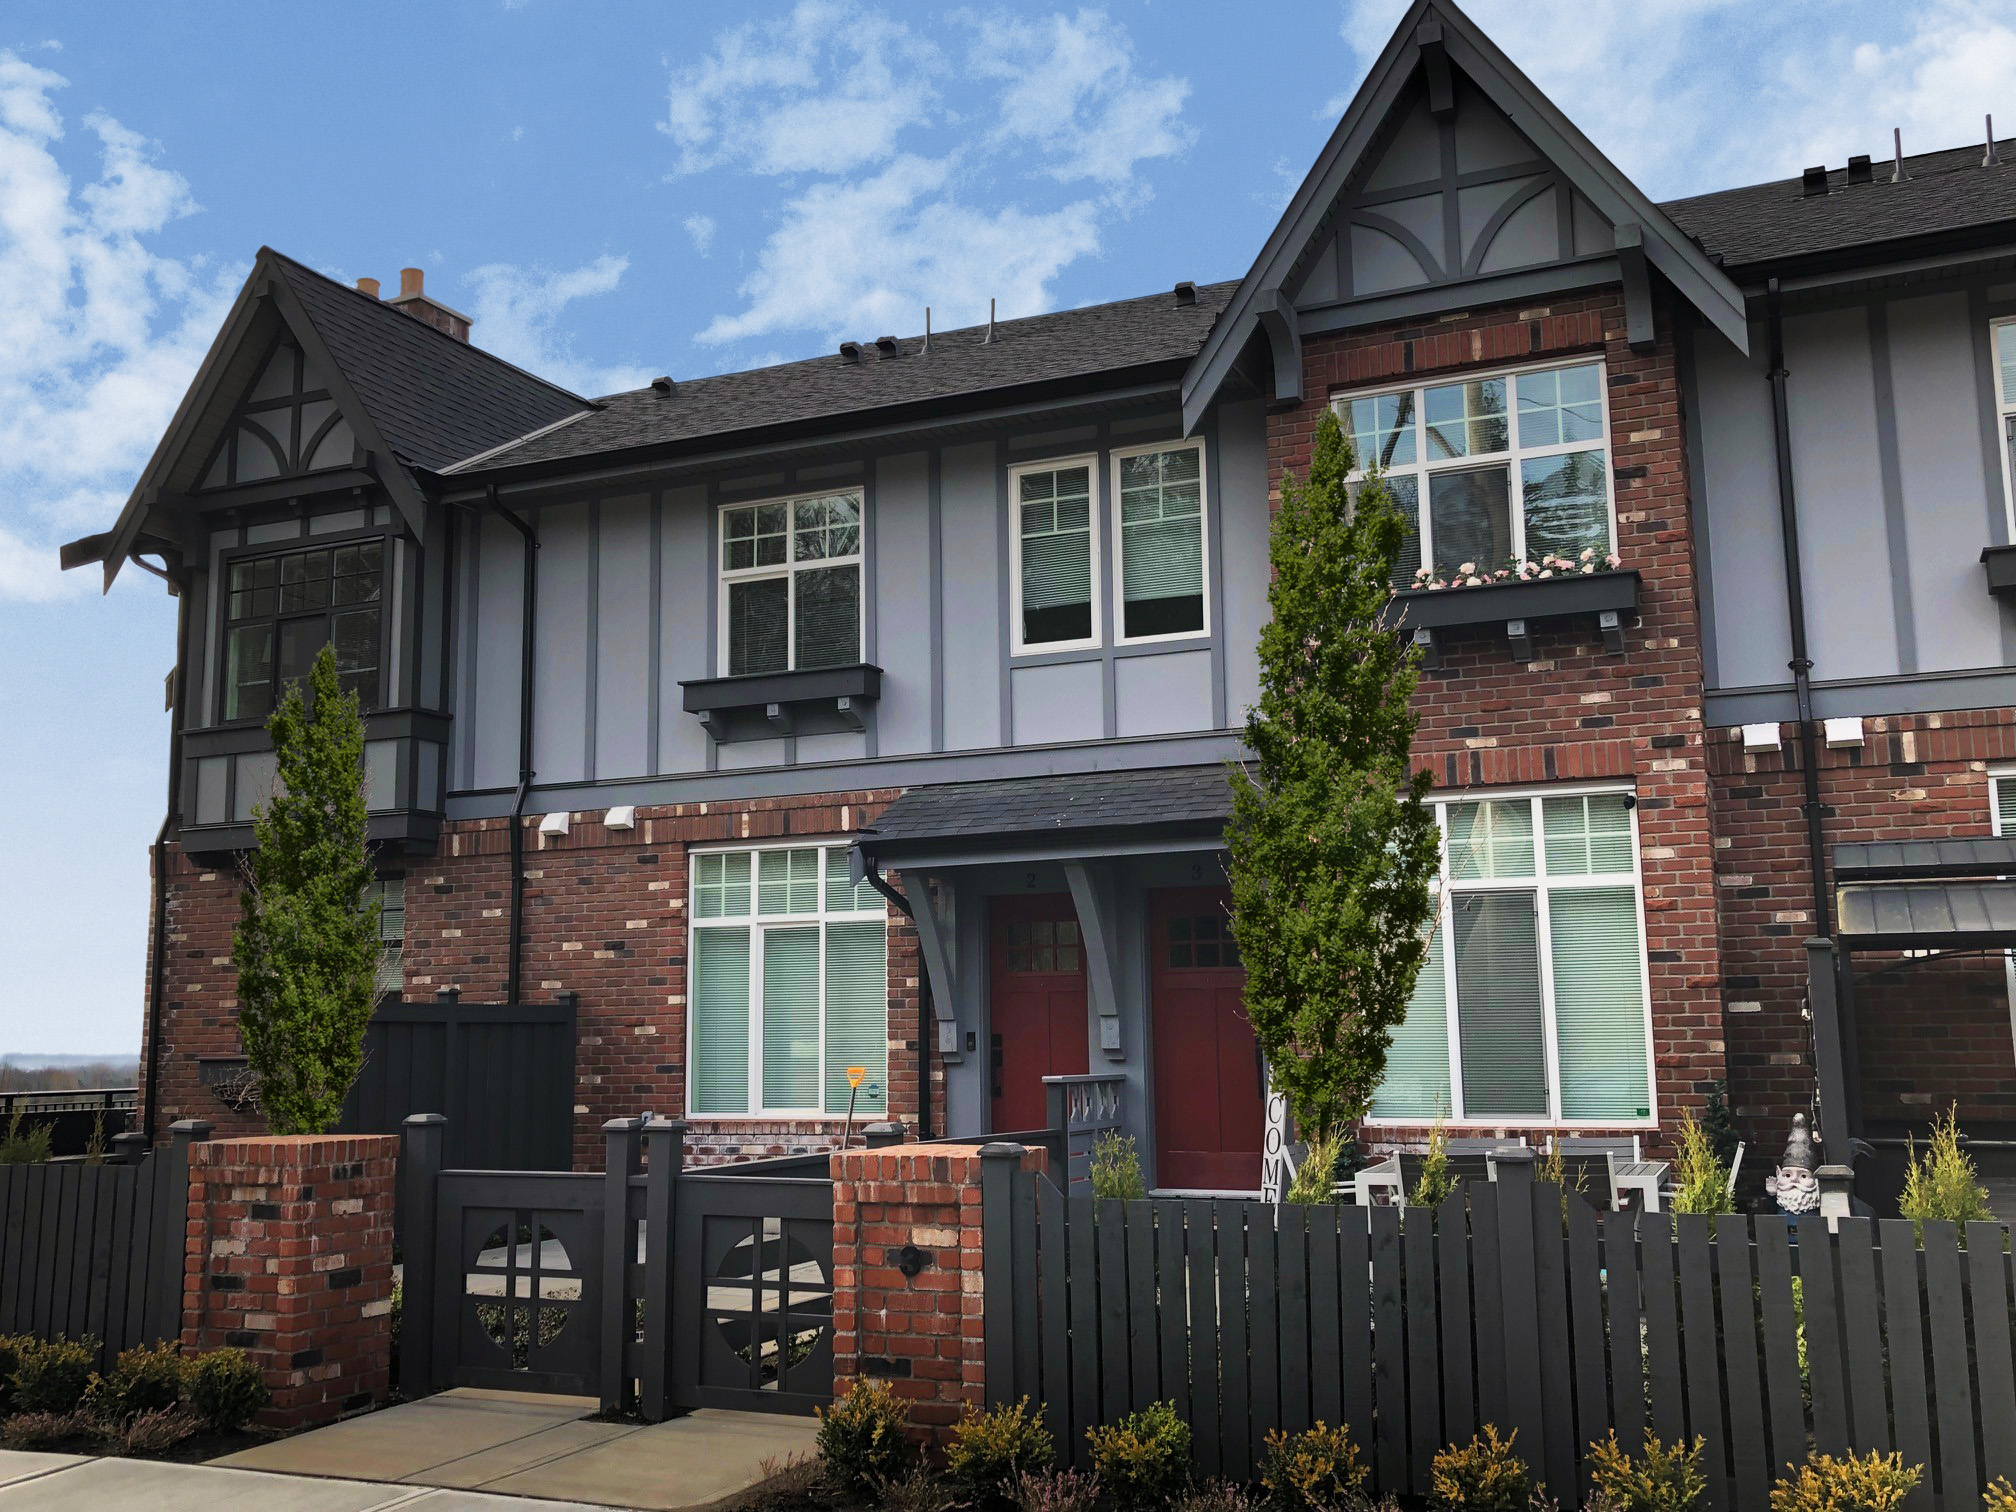 1 Victoria-Drive-Townhomes-with-trees_EKISTICS